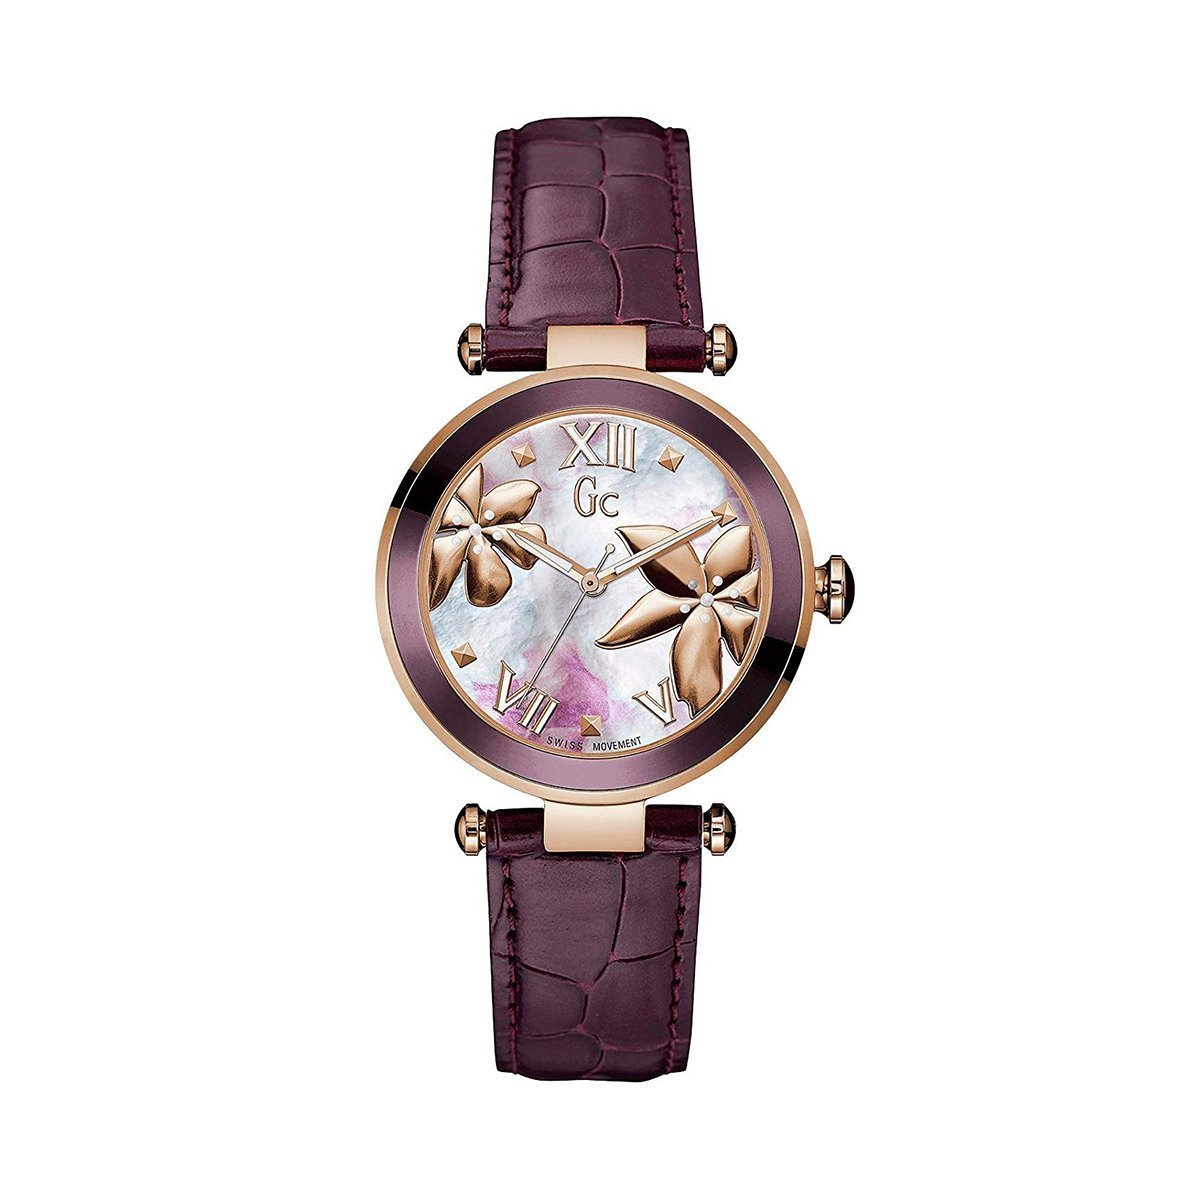 Guess Collection Ladychic Watch Purple - Watches & Crystals